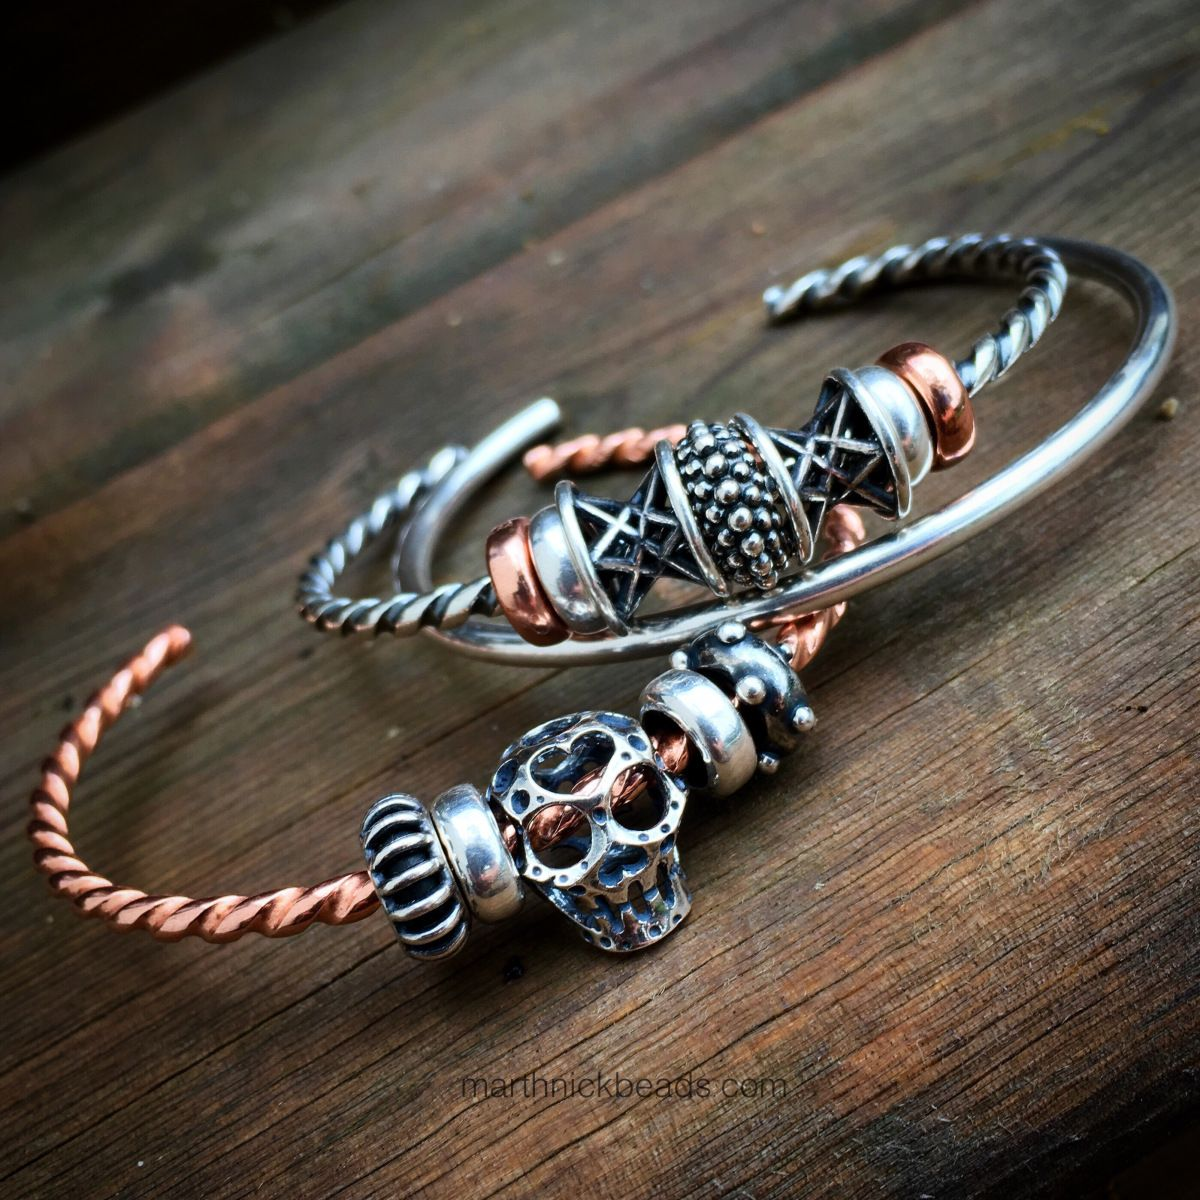 As seen on my previous blog post, the Trollbeads Twisted Bangles ...